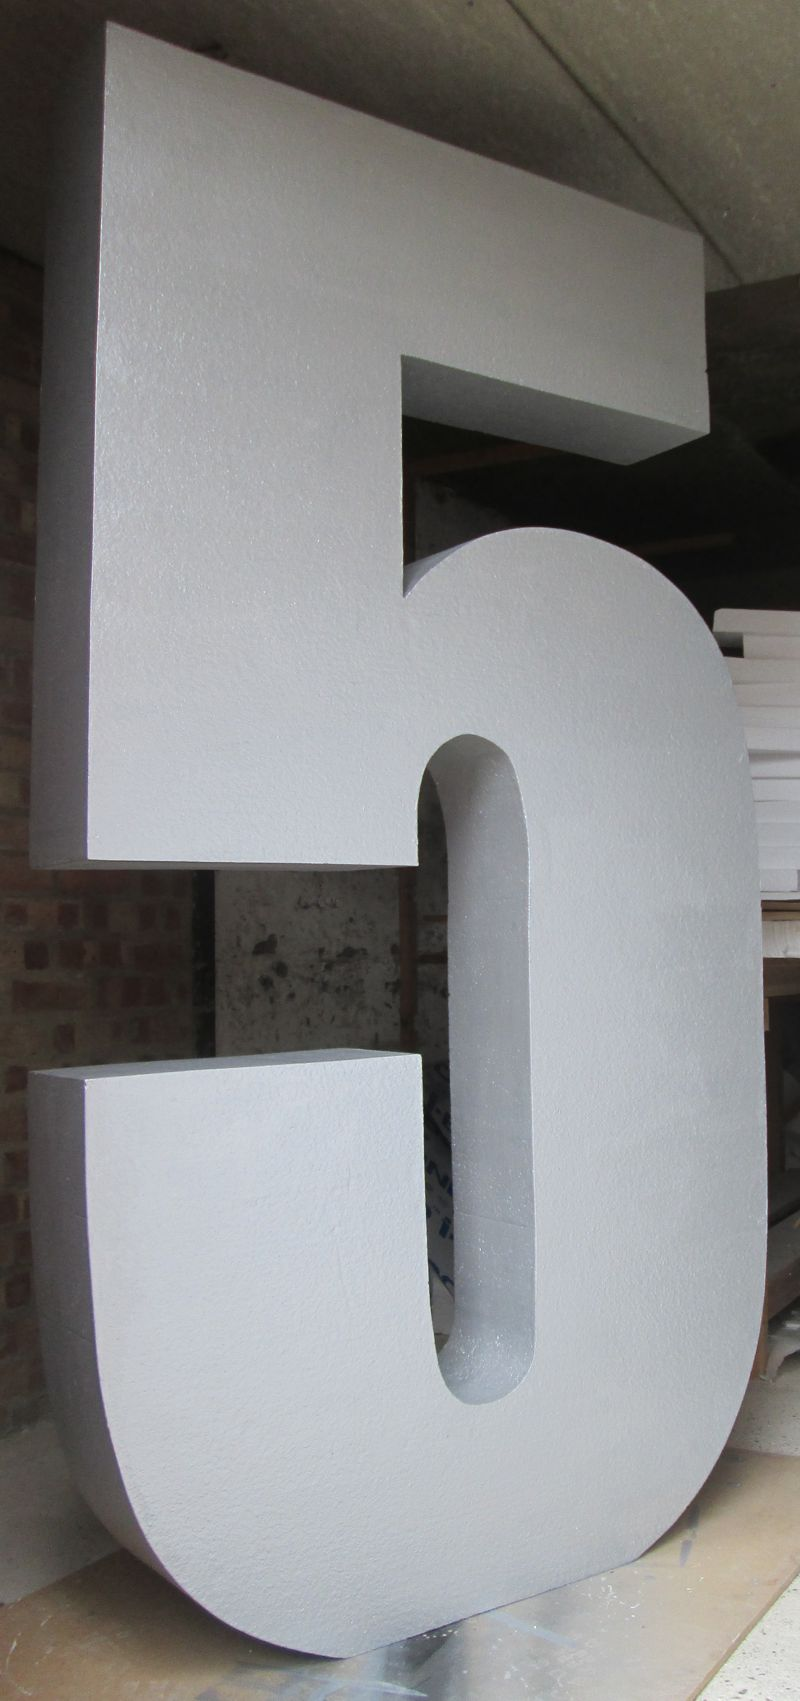 polystyrene-number-2000mm-200mm-impact-silver